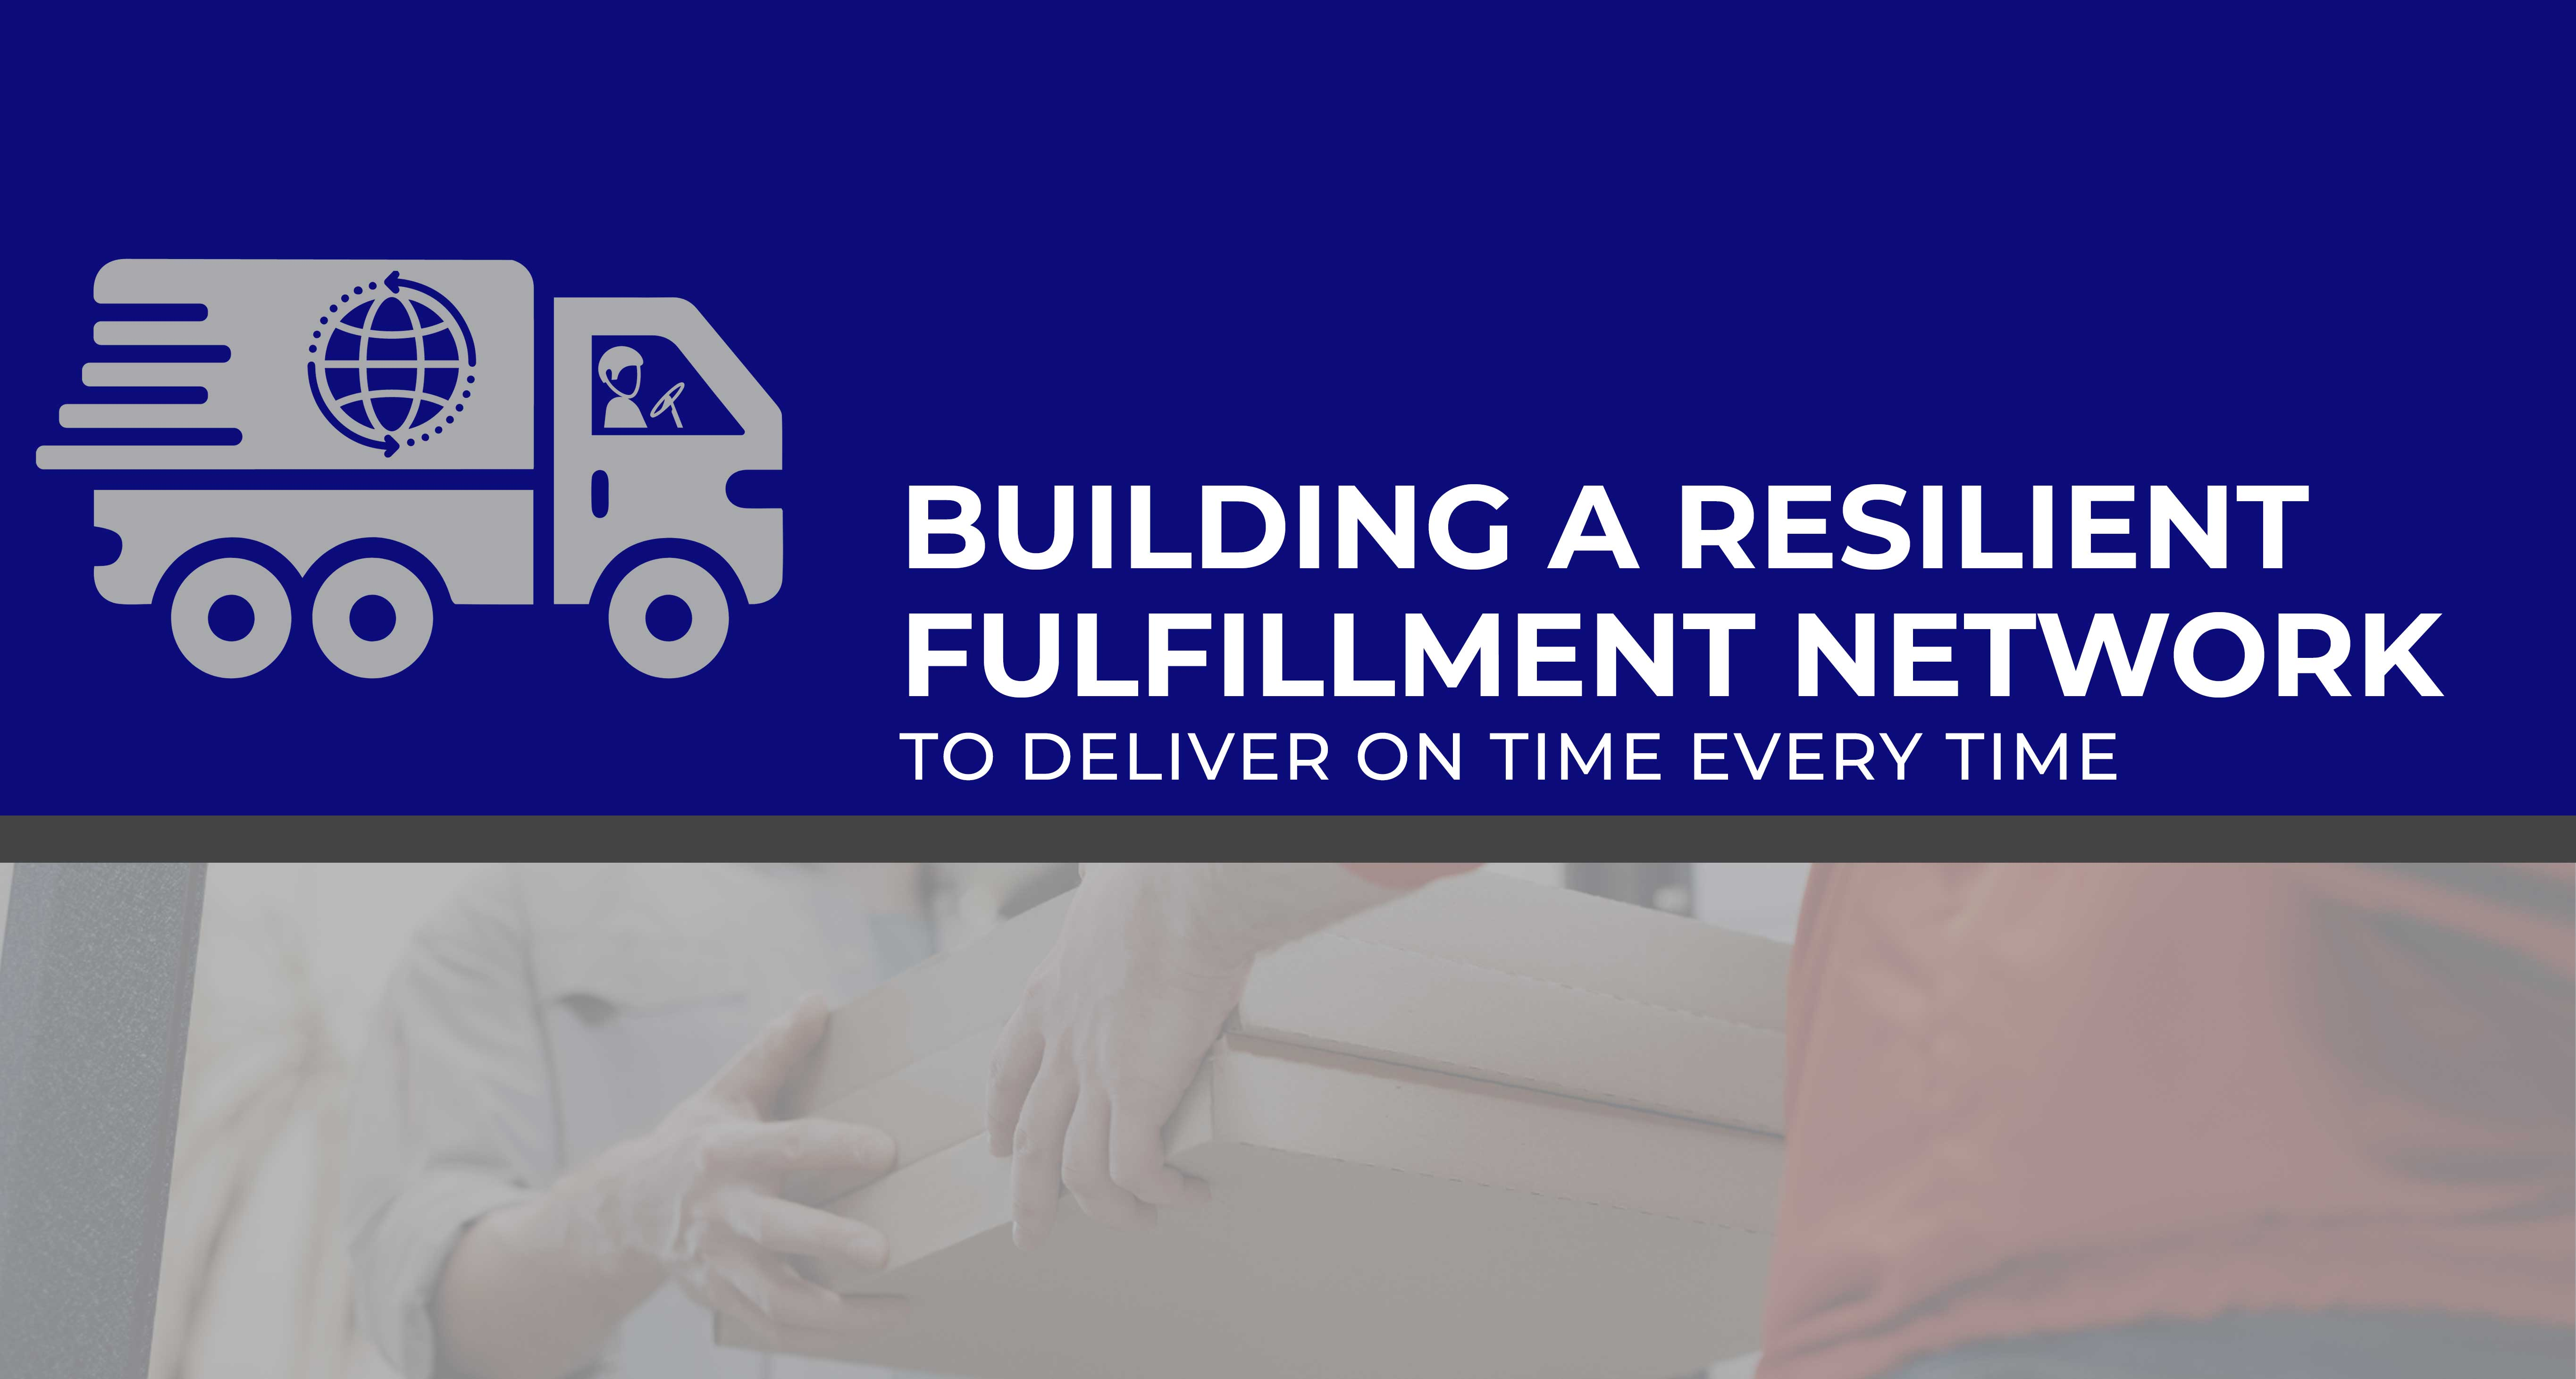 Building a Resilient Fulfillment Network to Deliver on Time Every Time